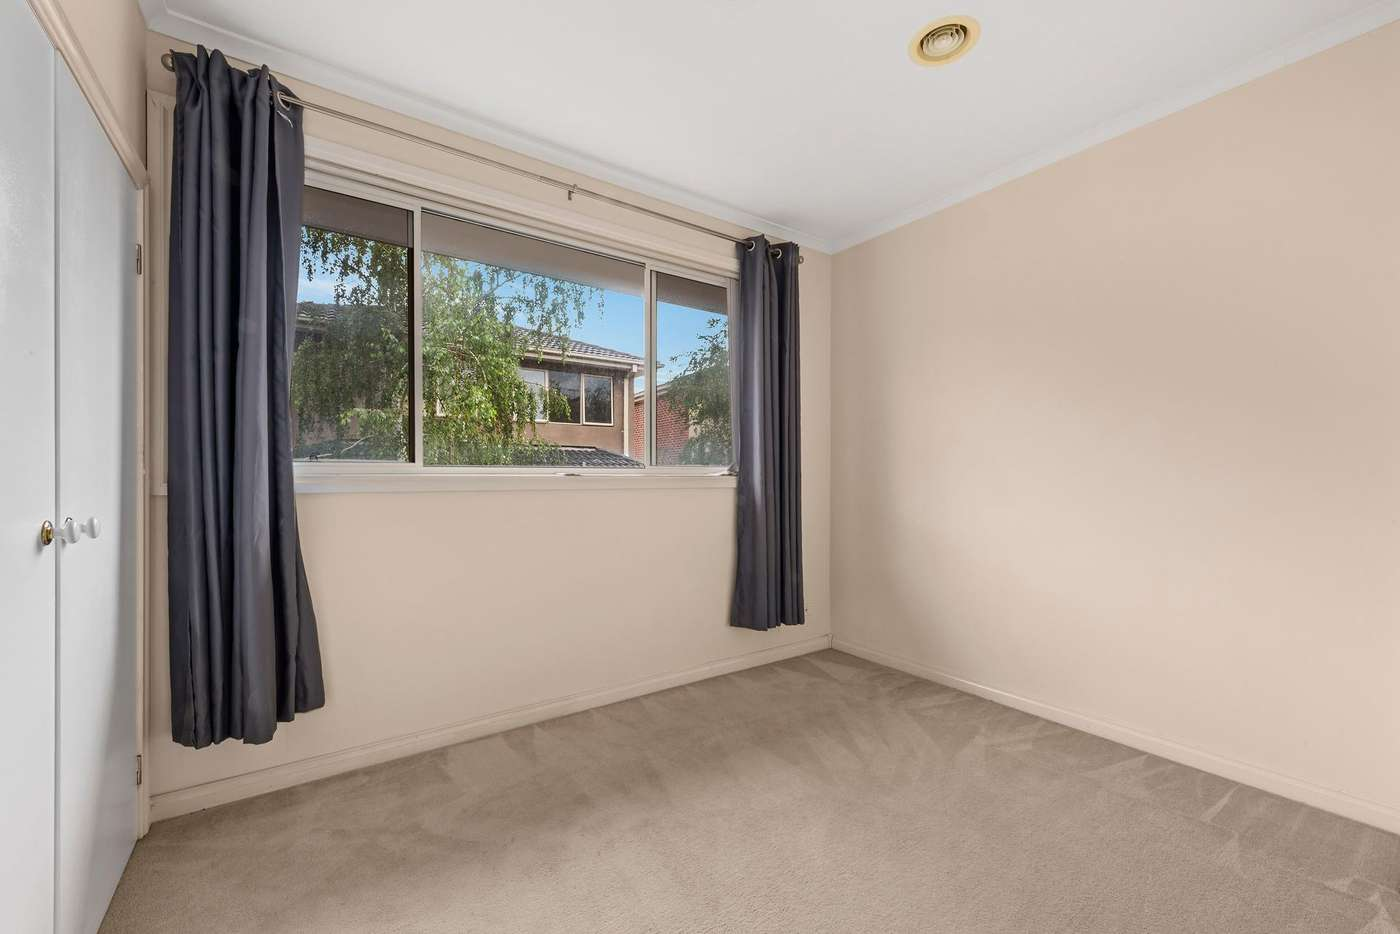 Sixth view of Homely townhouse listing, 2/323 Thompsons Road, Templestowe Lower VIC 3107